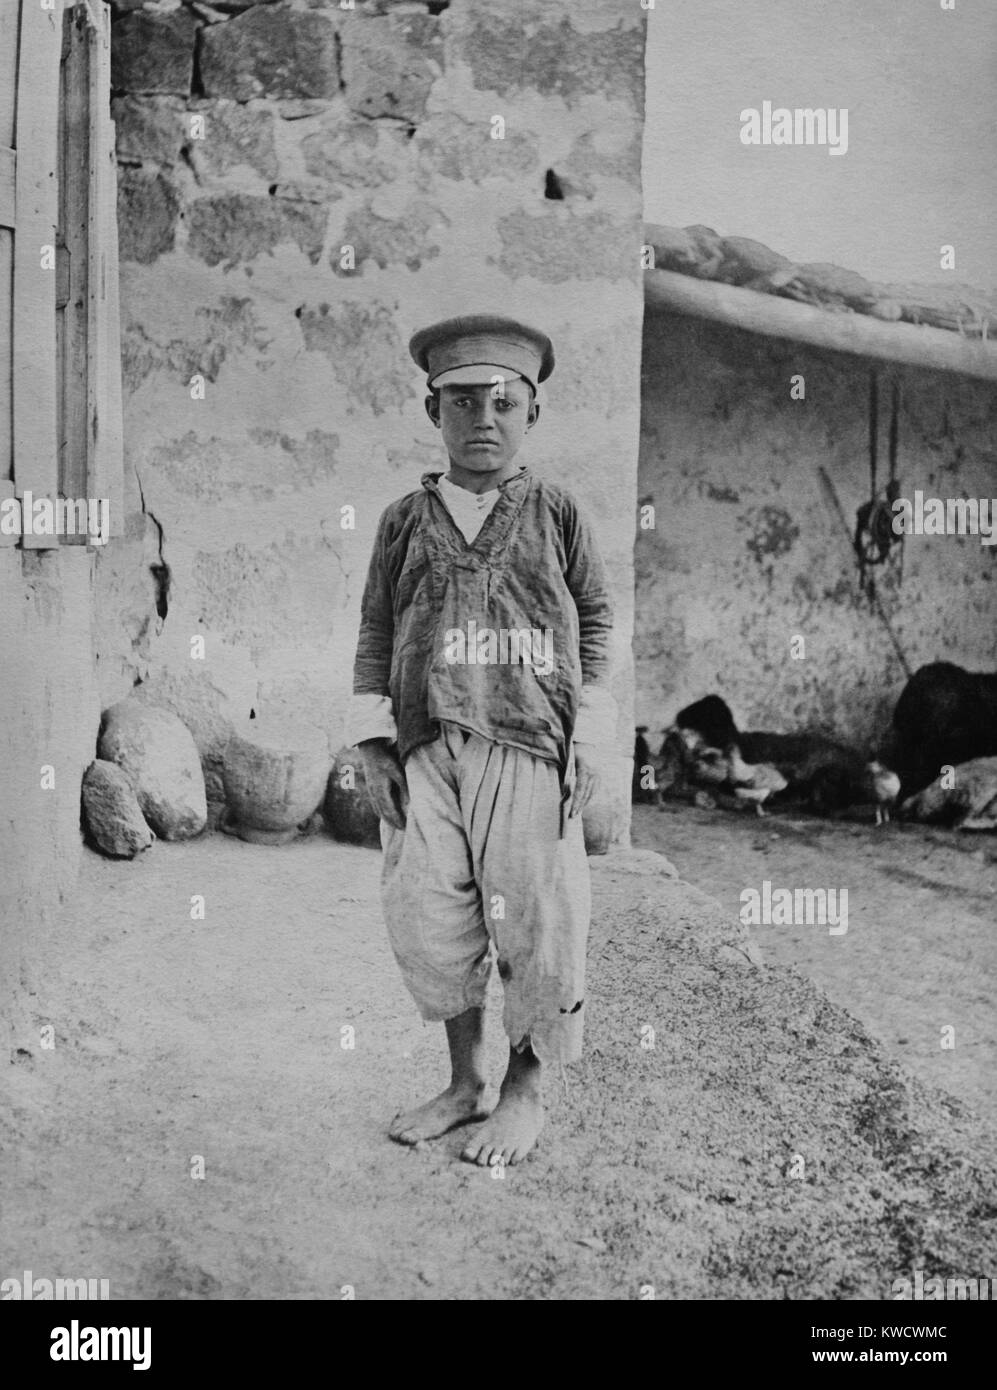 Armenian genocide victim, an orphan boy, was the only survivor of family of 15. 1915-1920 (BSLOC_2017_1_165) - Stock Image